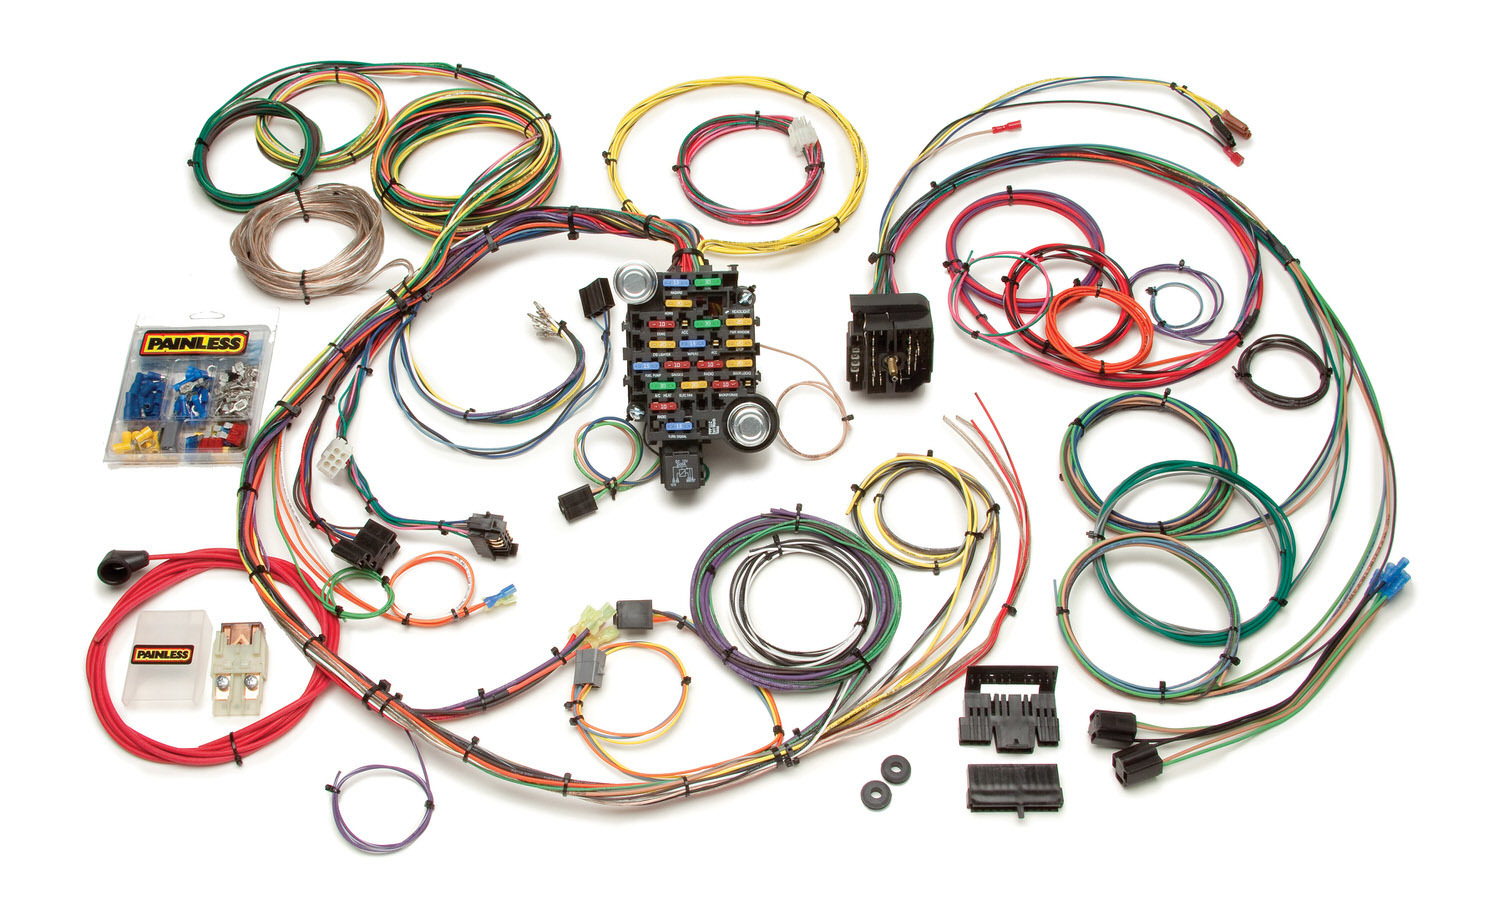 Painless Wiring 20101 Car Wiring Harness, Customizable, Complete, 24 Circuit, GM F-Body 1967-68, Kit